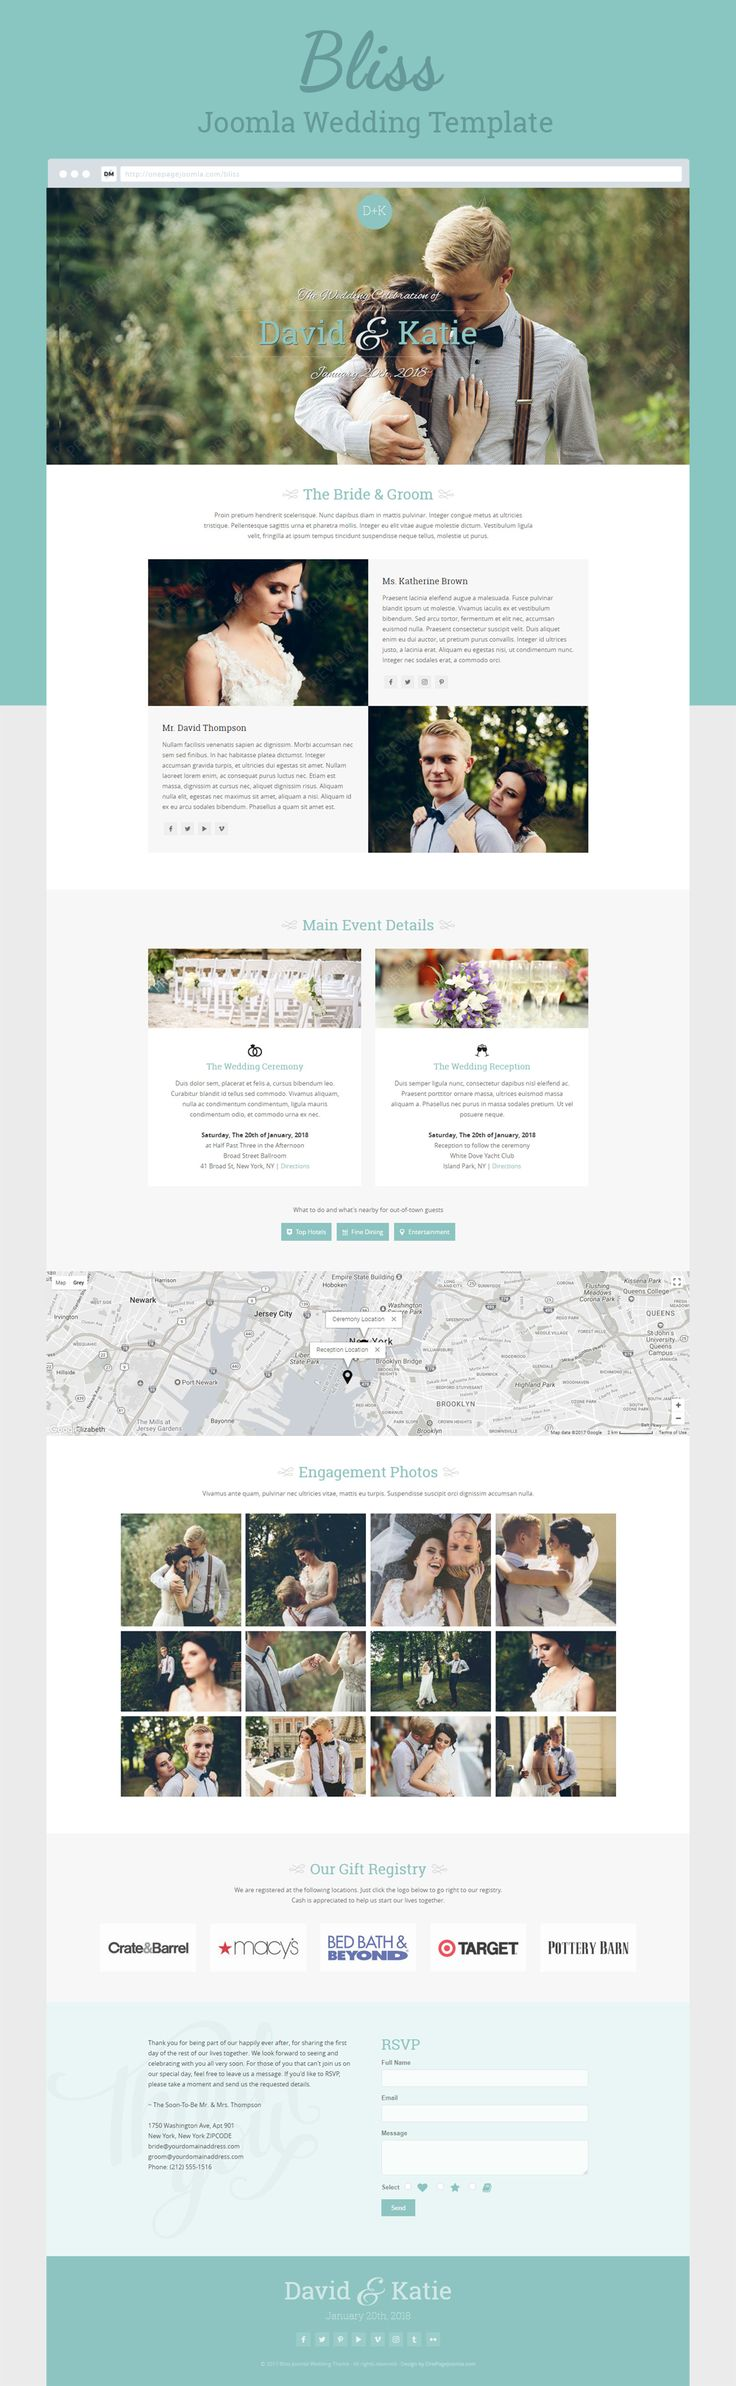 One Page #Joomla wedding & marriage template for sale. Easy installation with full help documentation. Support and customization is available. Multiple color styles available. #wedding #marriage #engagement #webdesign #template